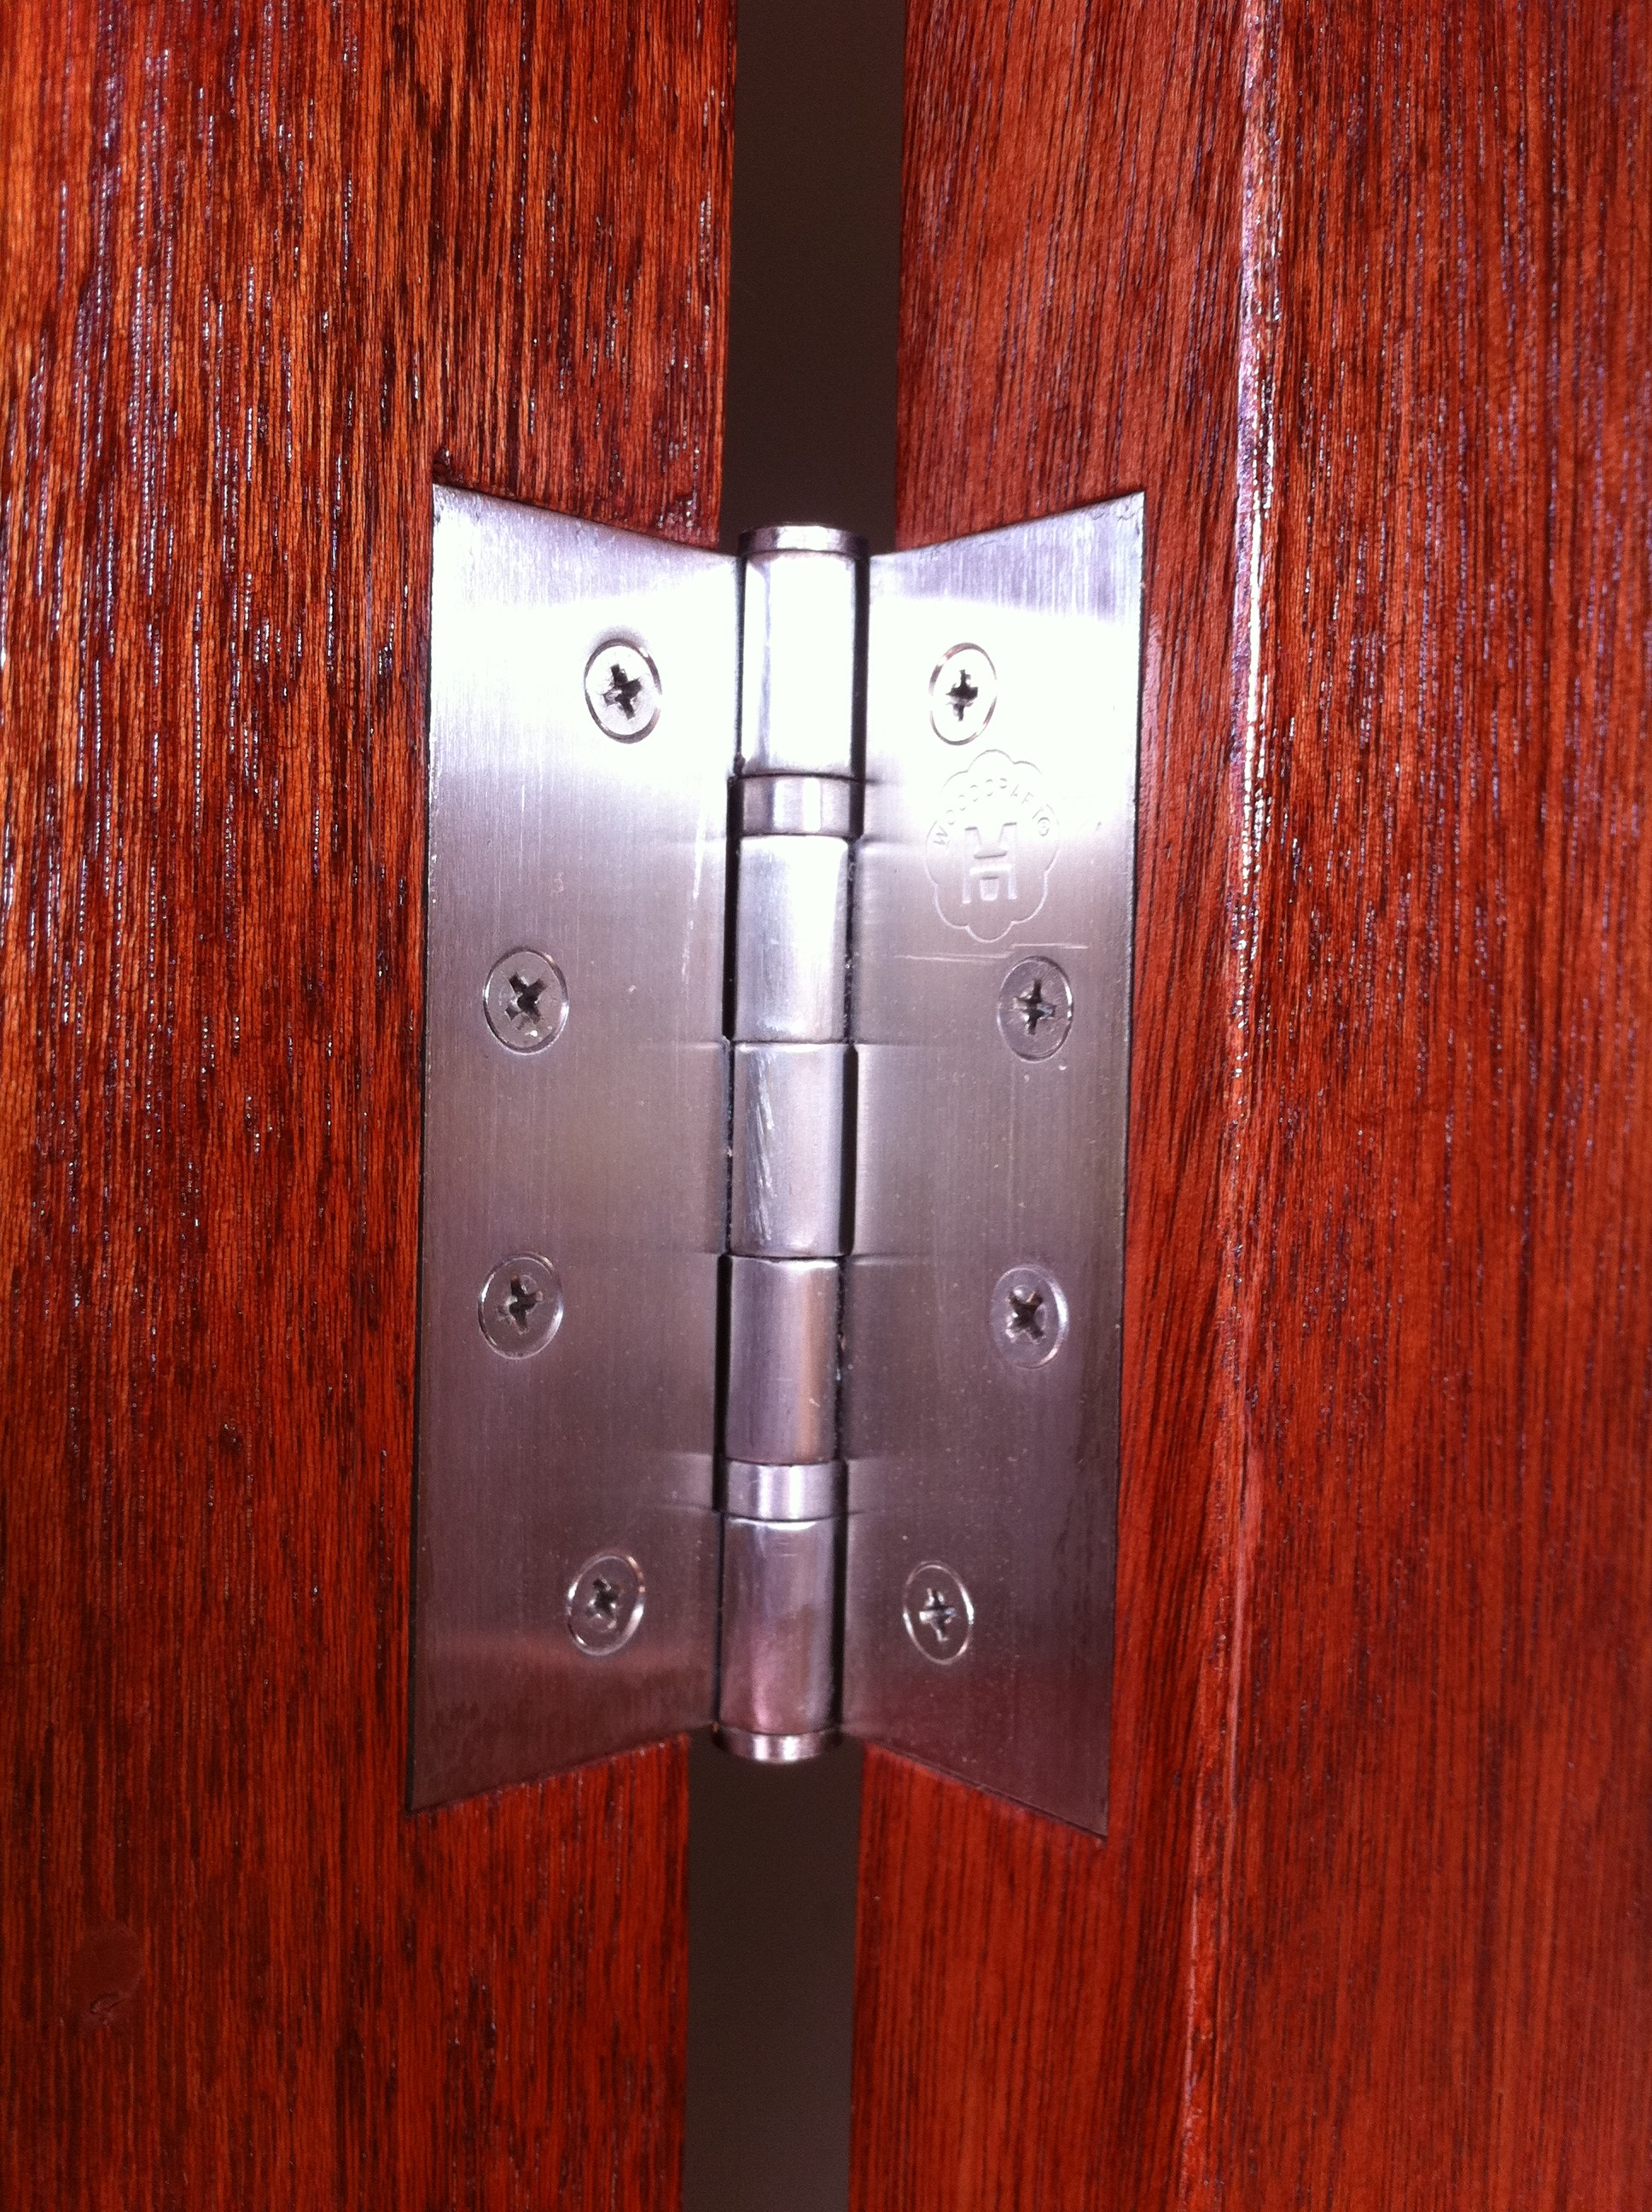 10c - Hinge Check Out